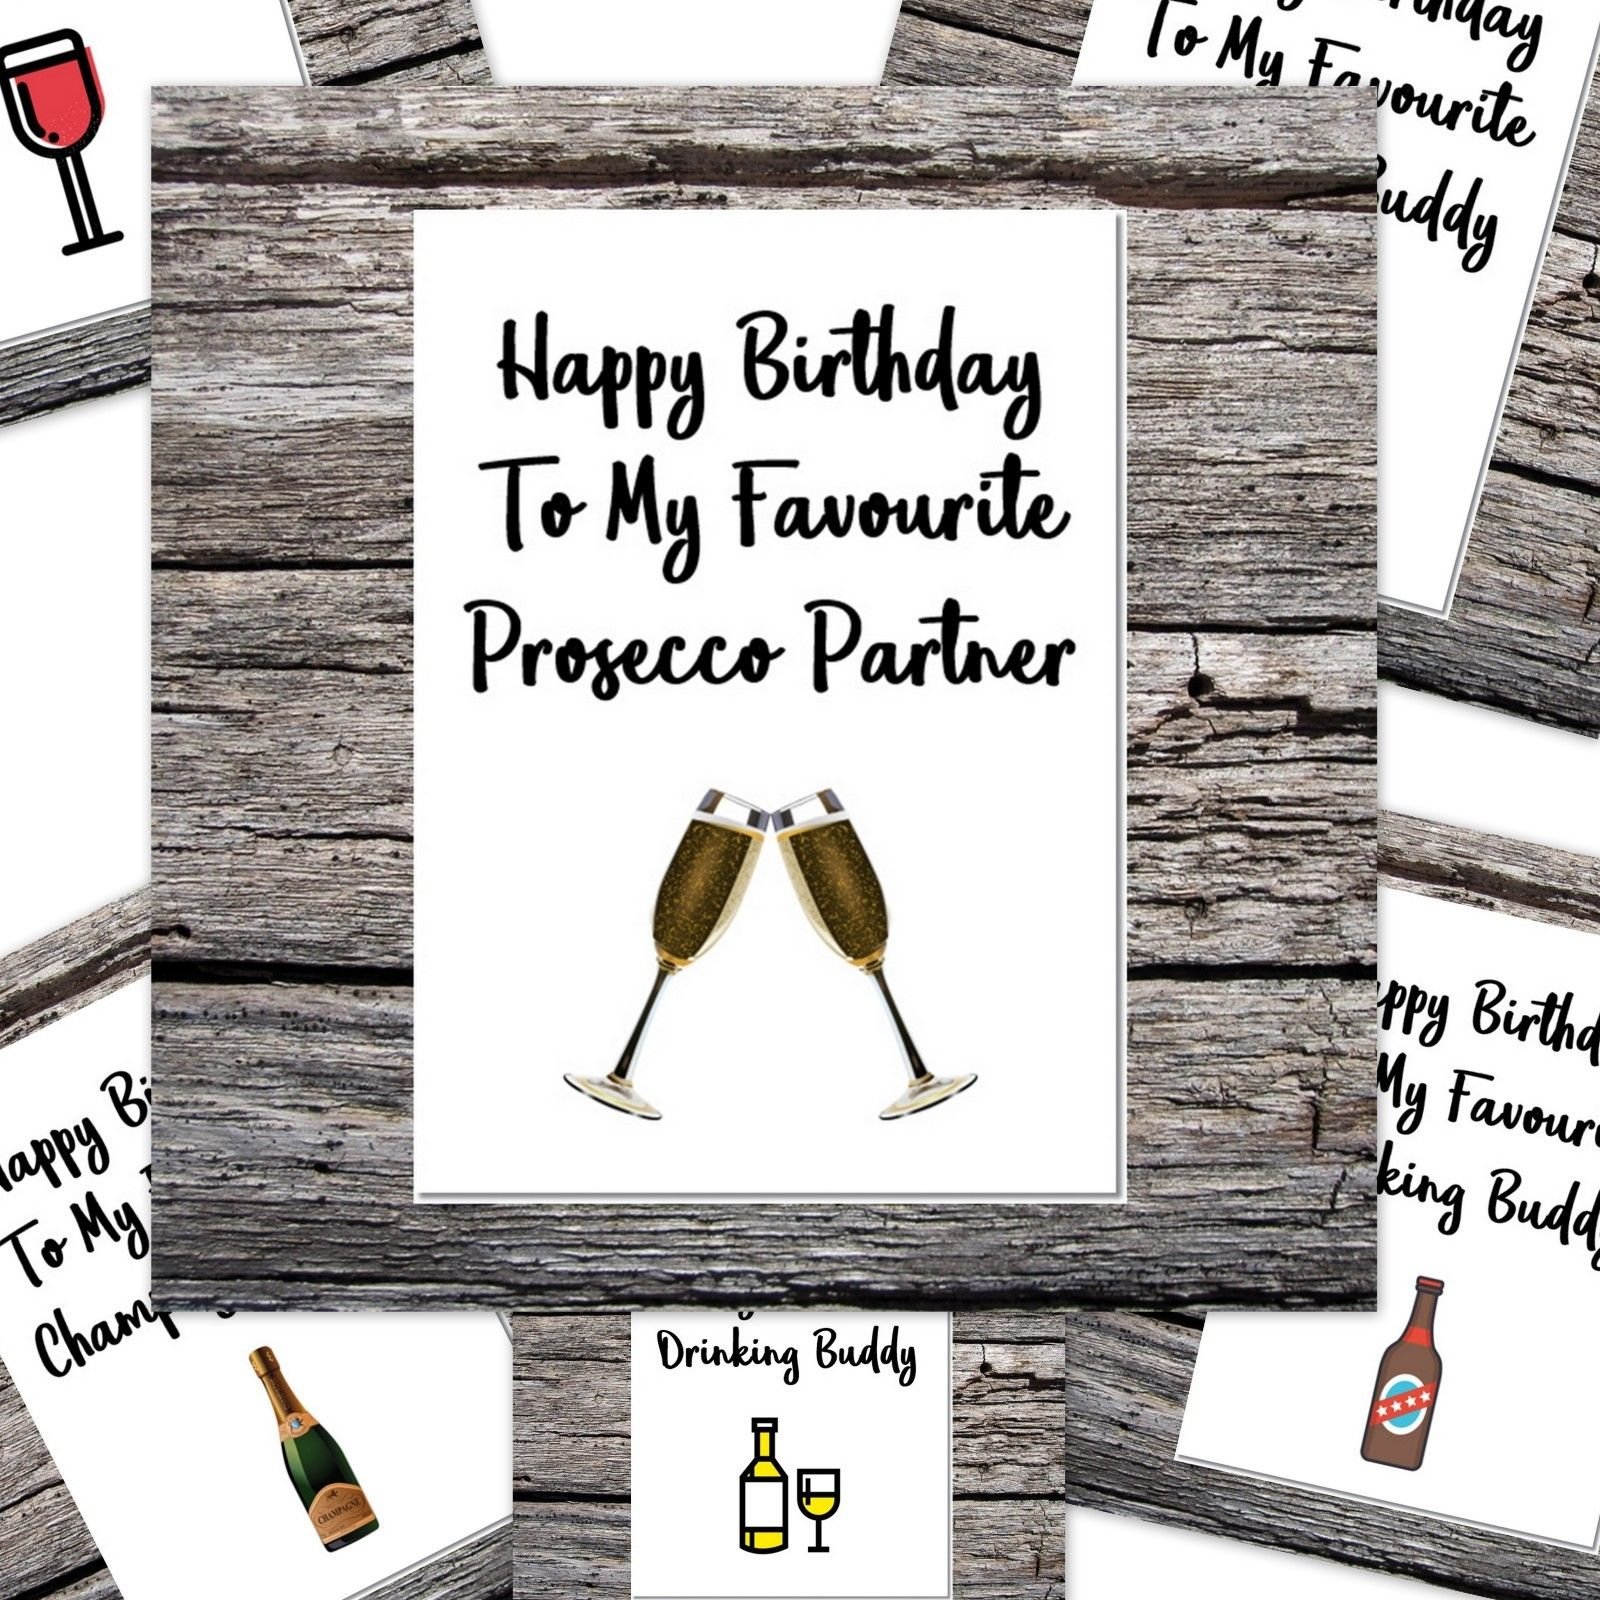 Funny Alcohol Birthday Card My Favourite Drinking Buddy Prosecco Champagne Etc Drinking Buddies Happy Birthday Me Alcohol Birthday Cards